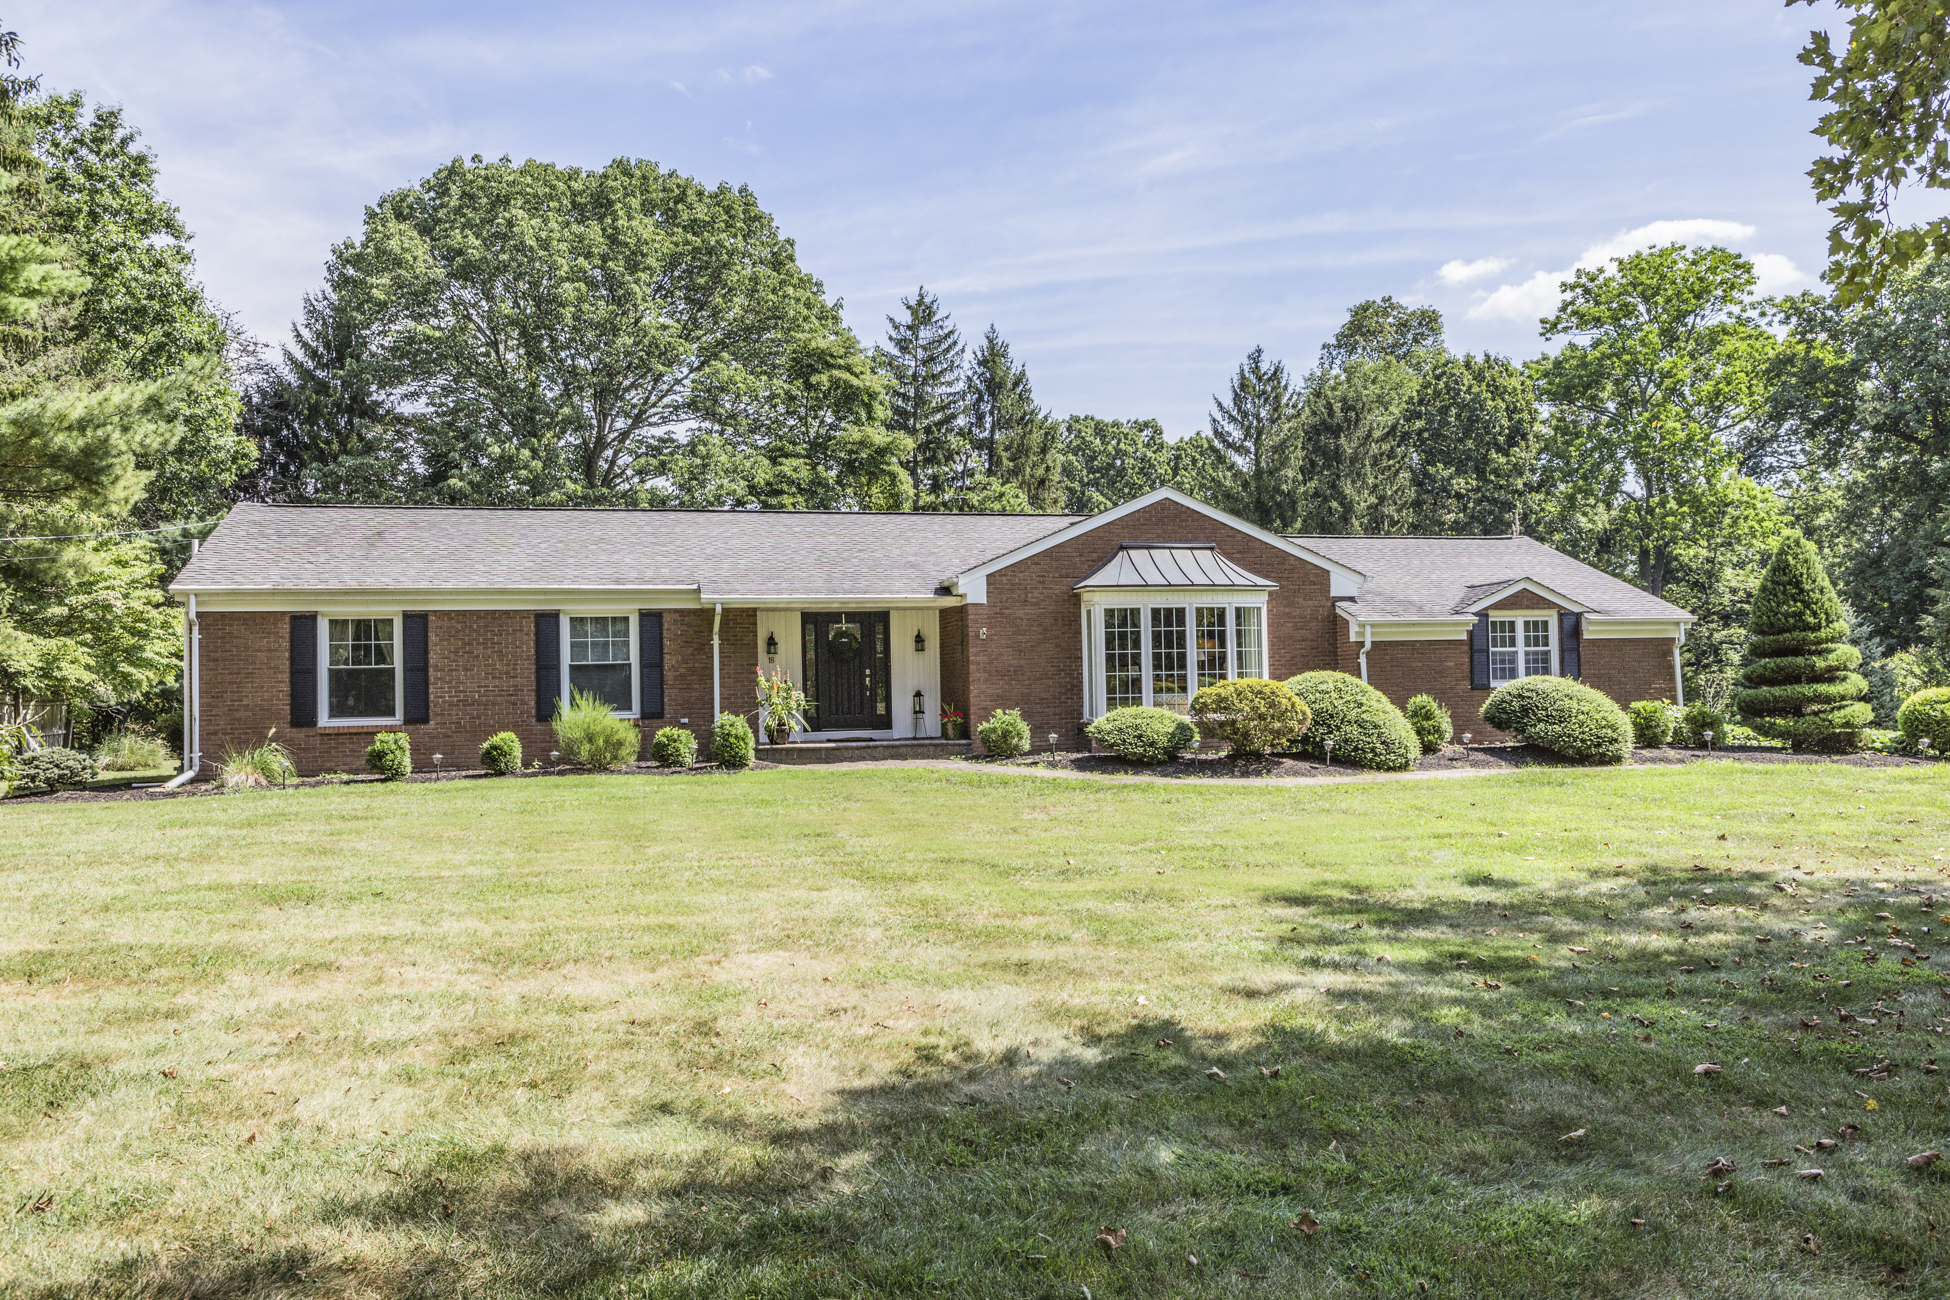 sales property at Stylishly Updated In An Established Neighborhood - Hopewell Township